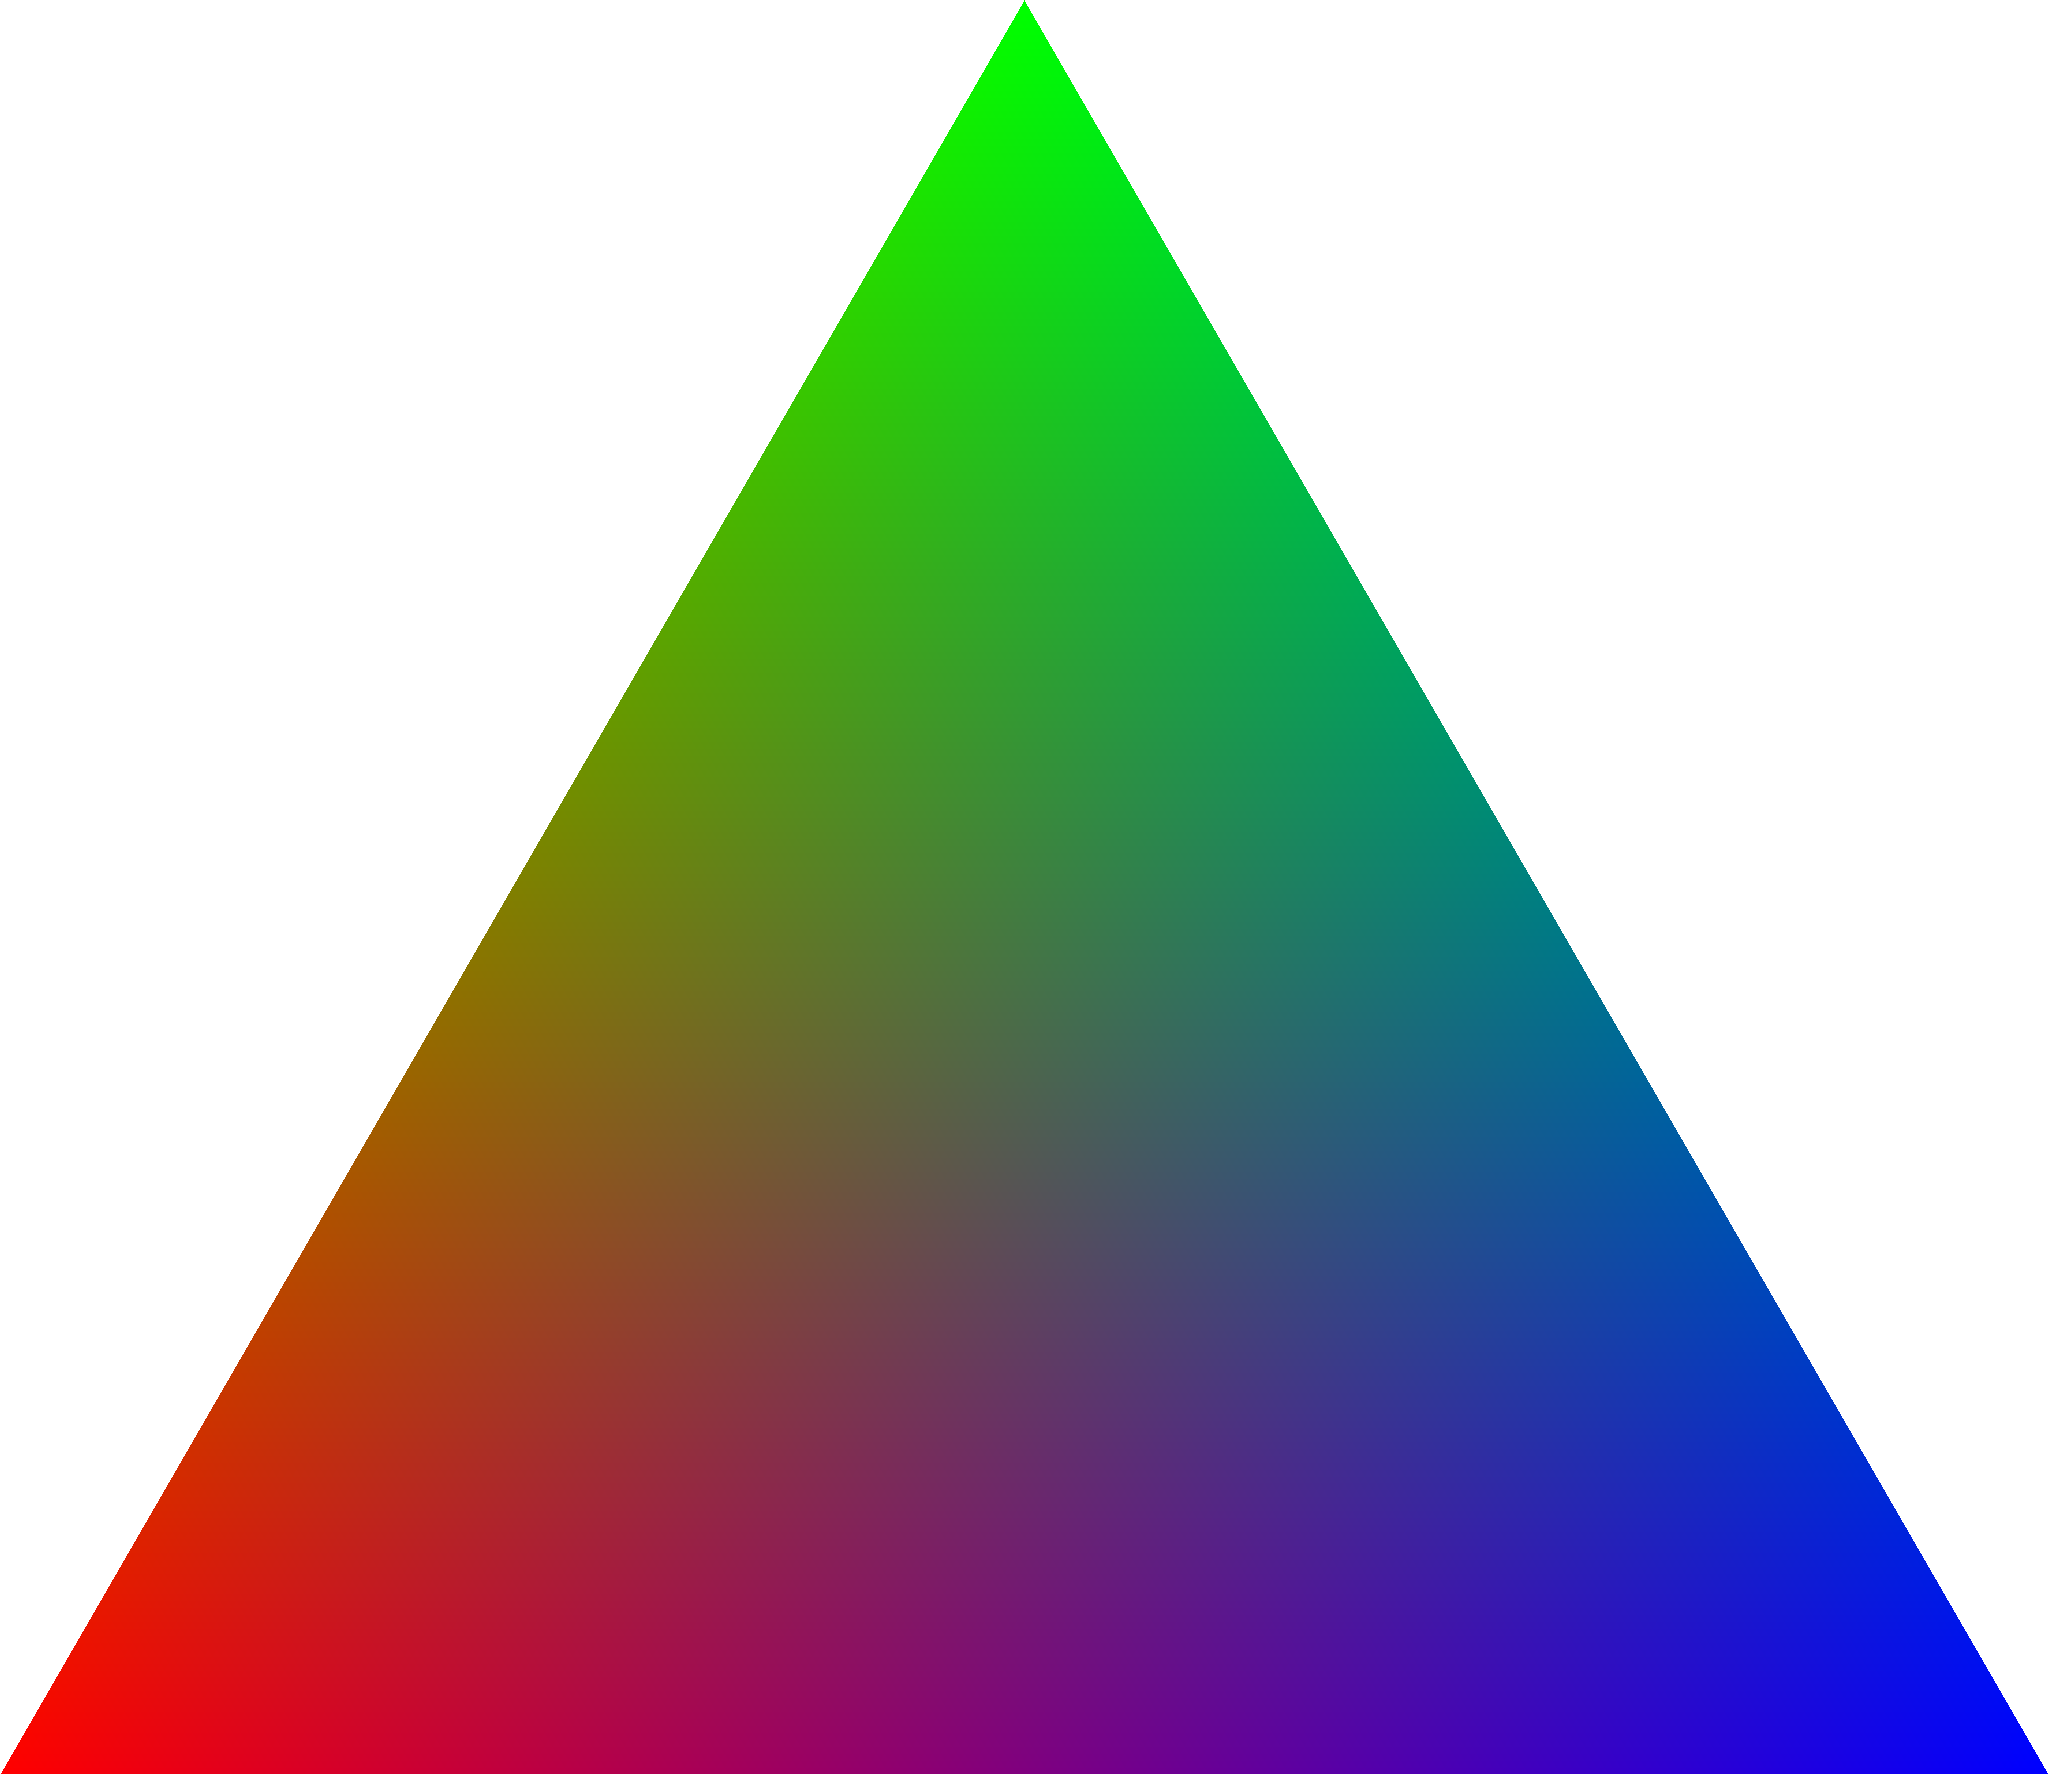 File:Barycentric RGB.png - Wikimedia Commons